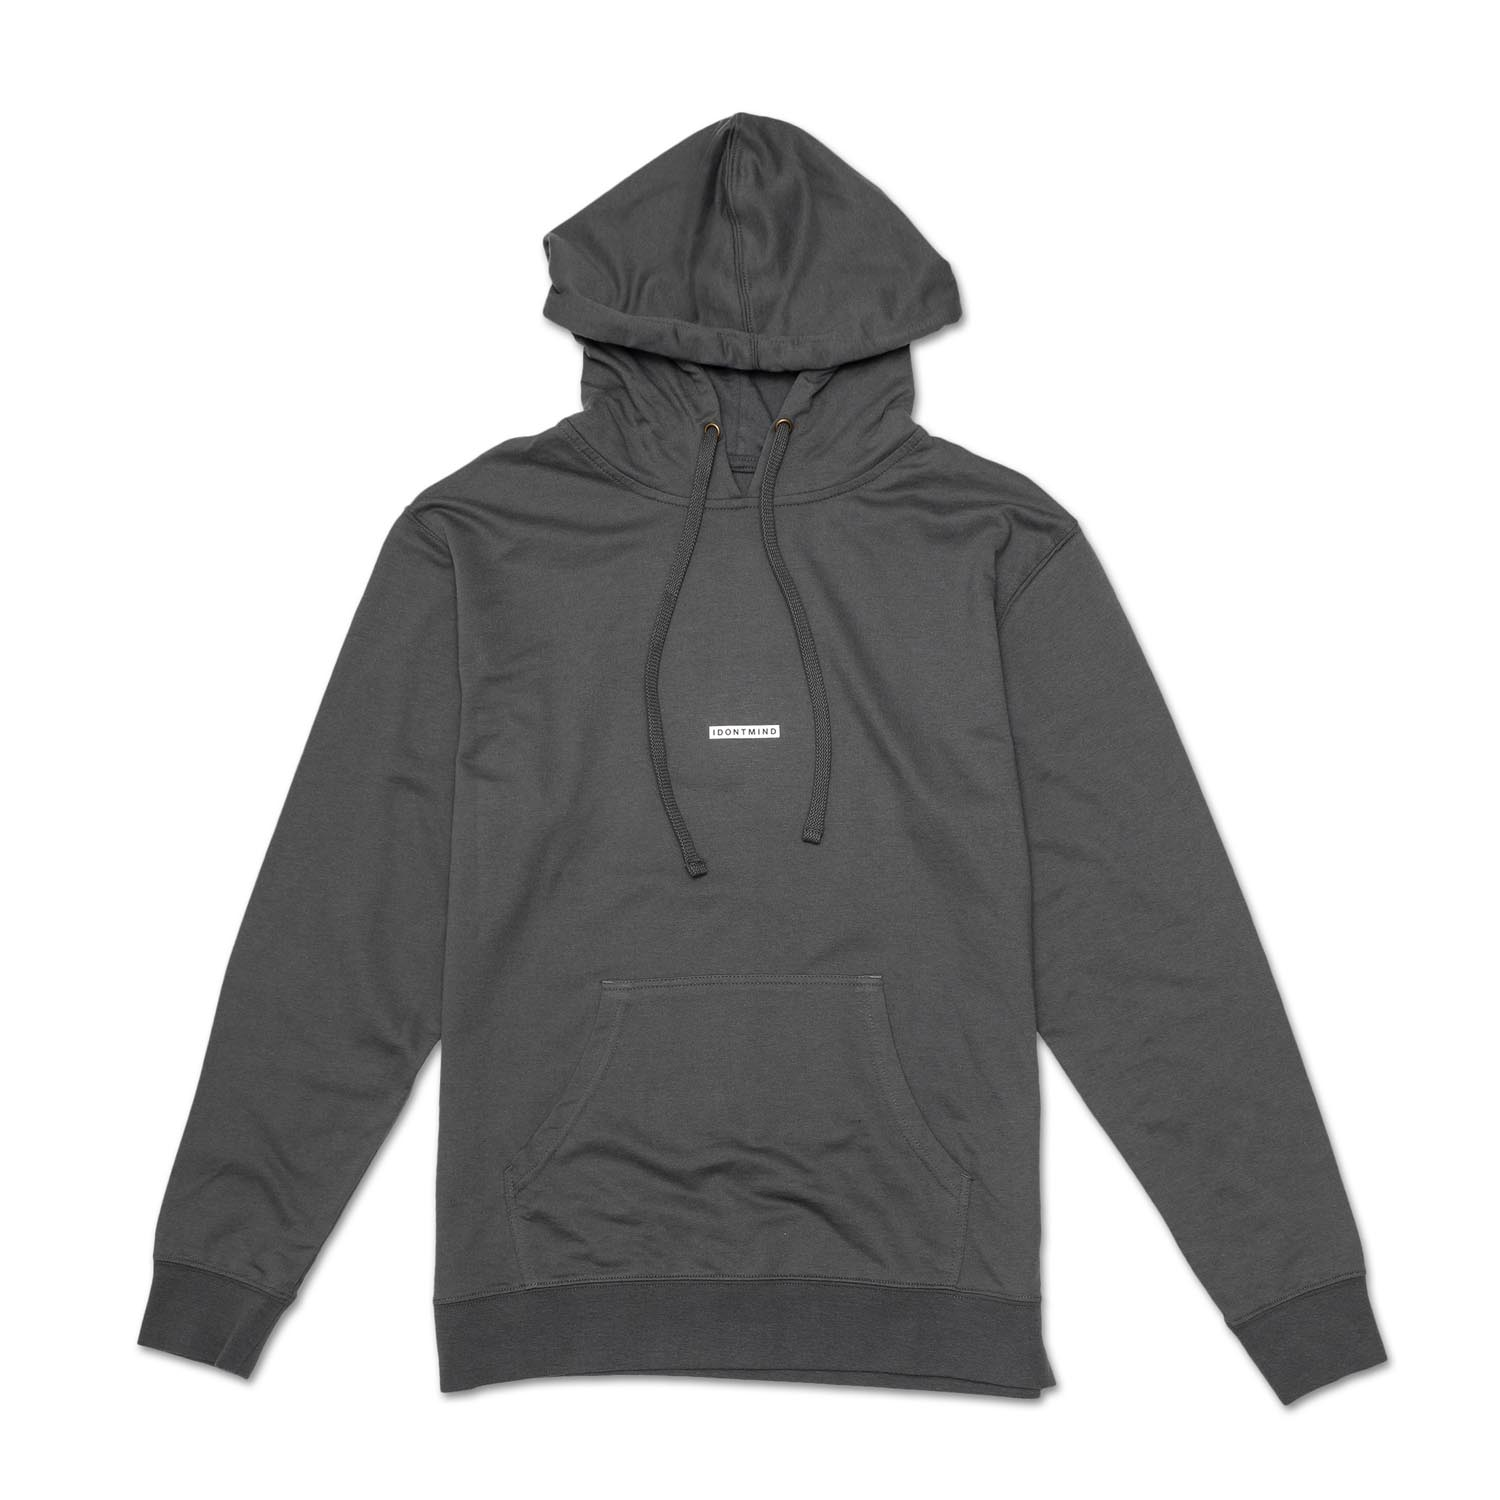 Center-Hoodie-Grey.jpg